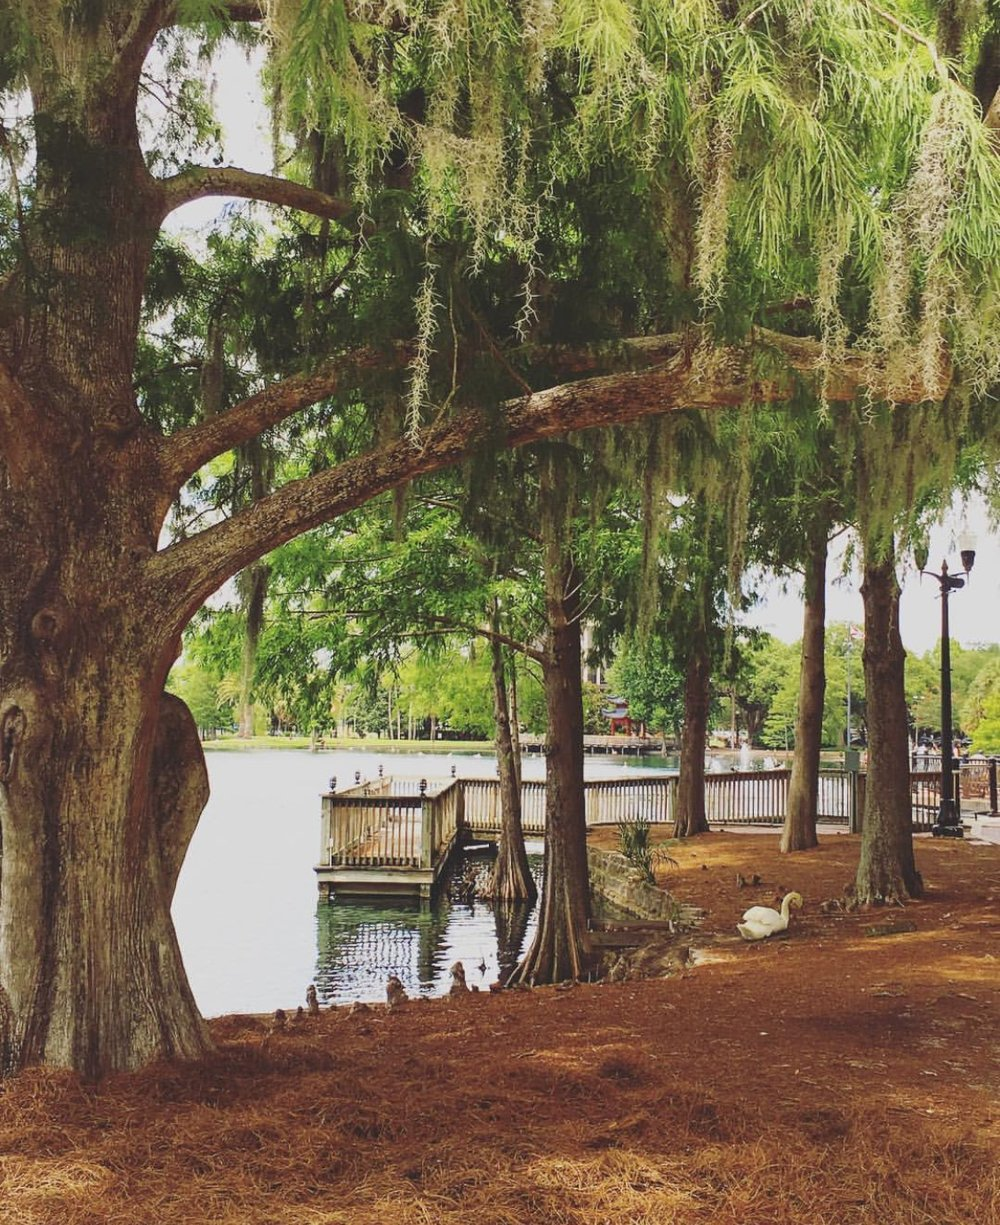 Parque natural Lake Eola em Downtown Orlando